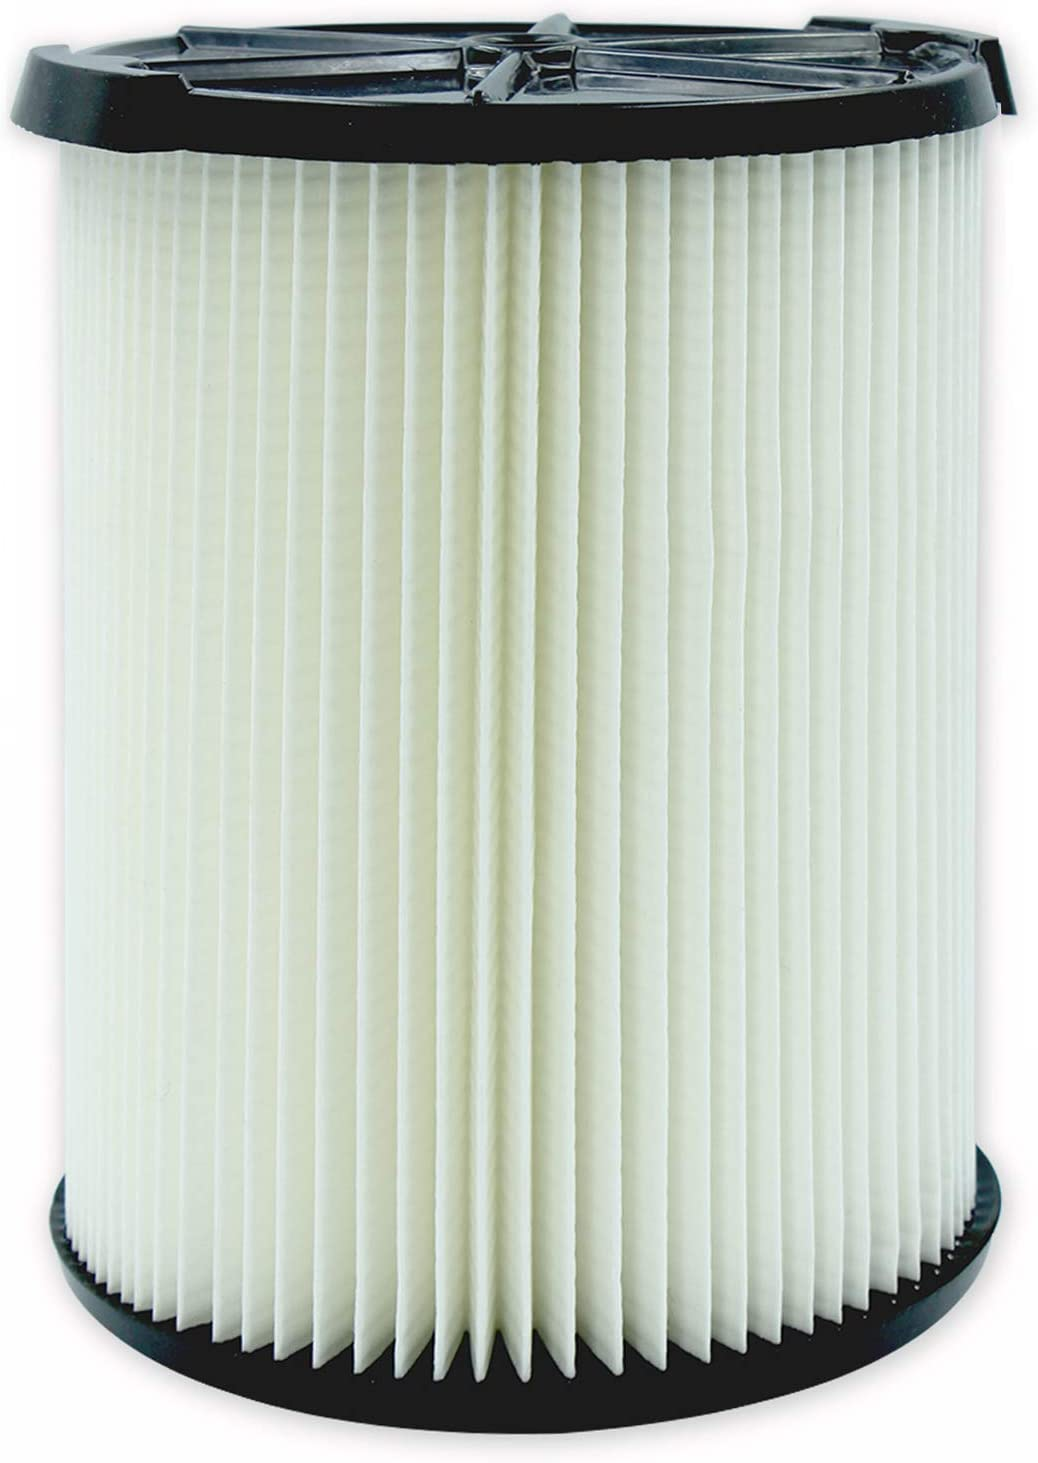 VF4000 General Standard Replacement Filter for Ridgid 72947 Wet Dry 5 to 20 Gal Vacuum, also fit Craftsman 17816 Shop Vac, 1 Pack